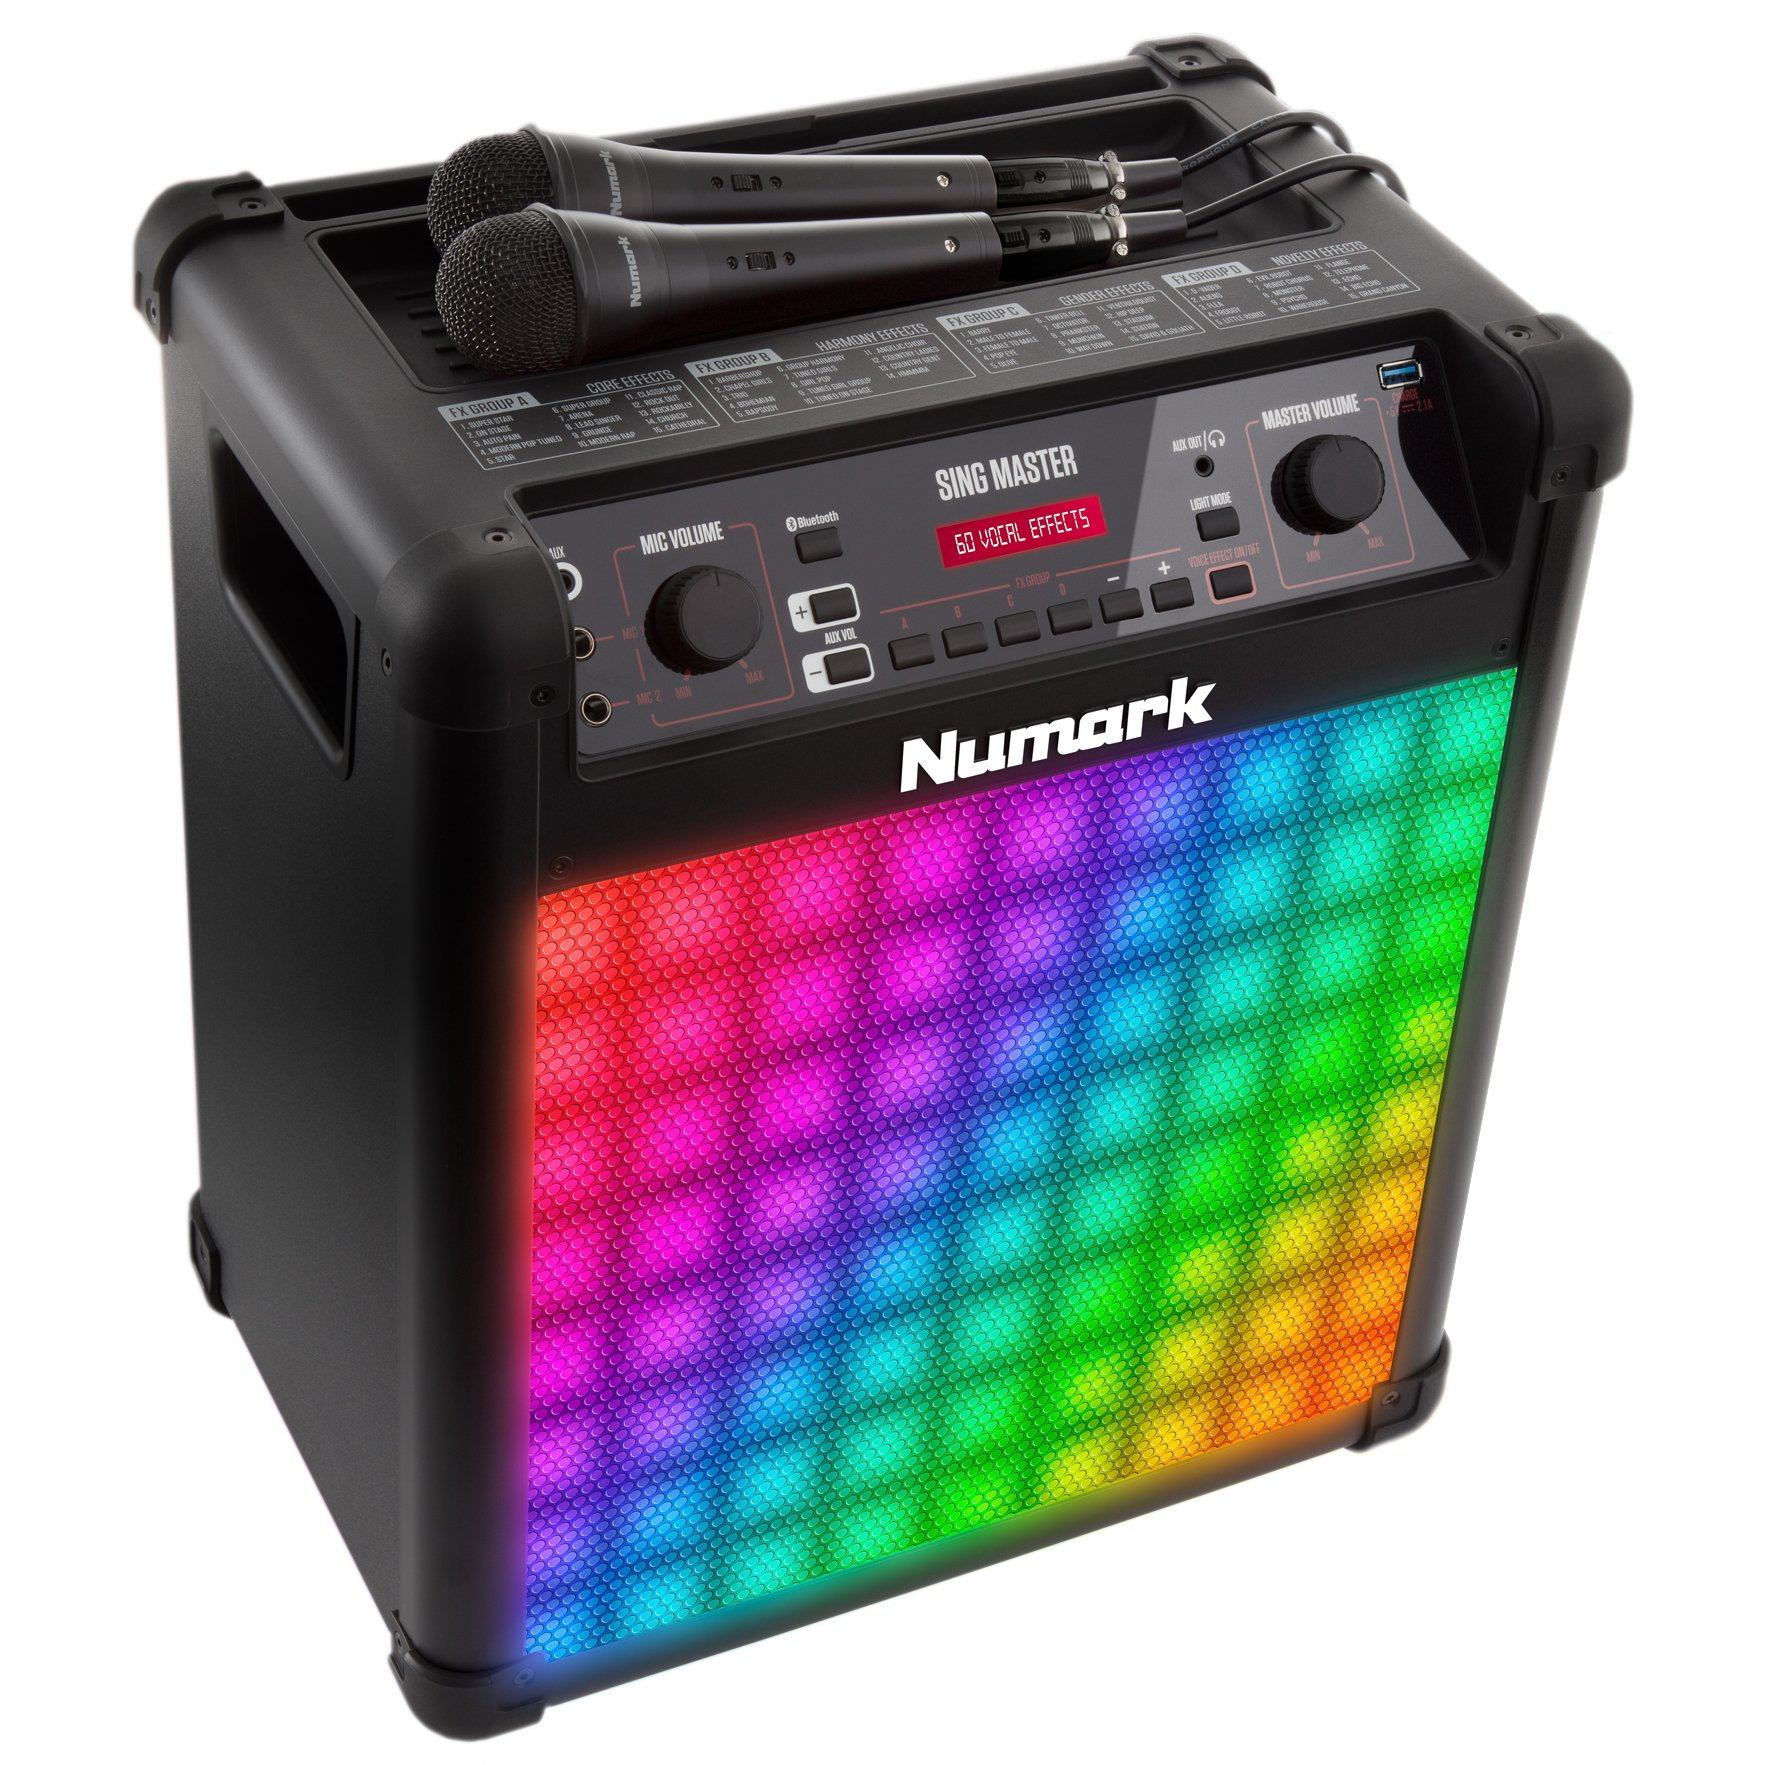 Numark SINGMASTER Karaoke Sound System With Effects